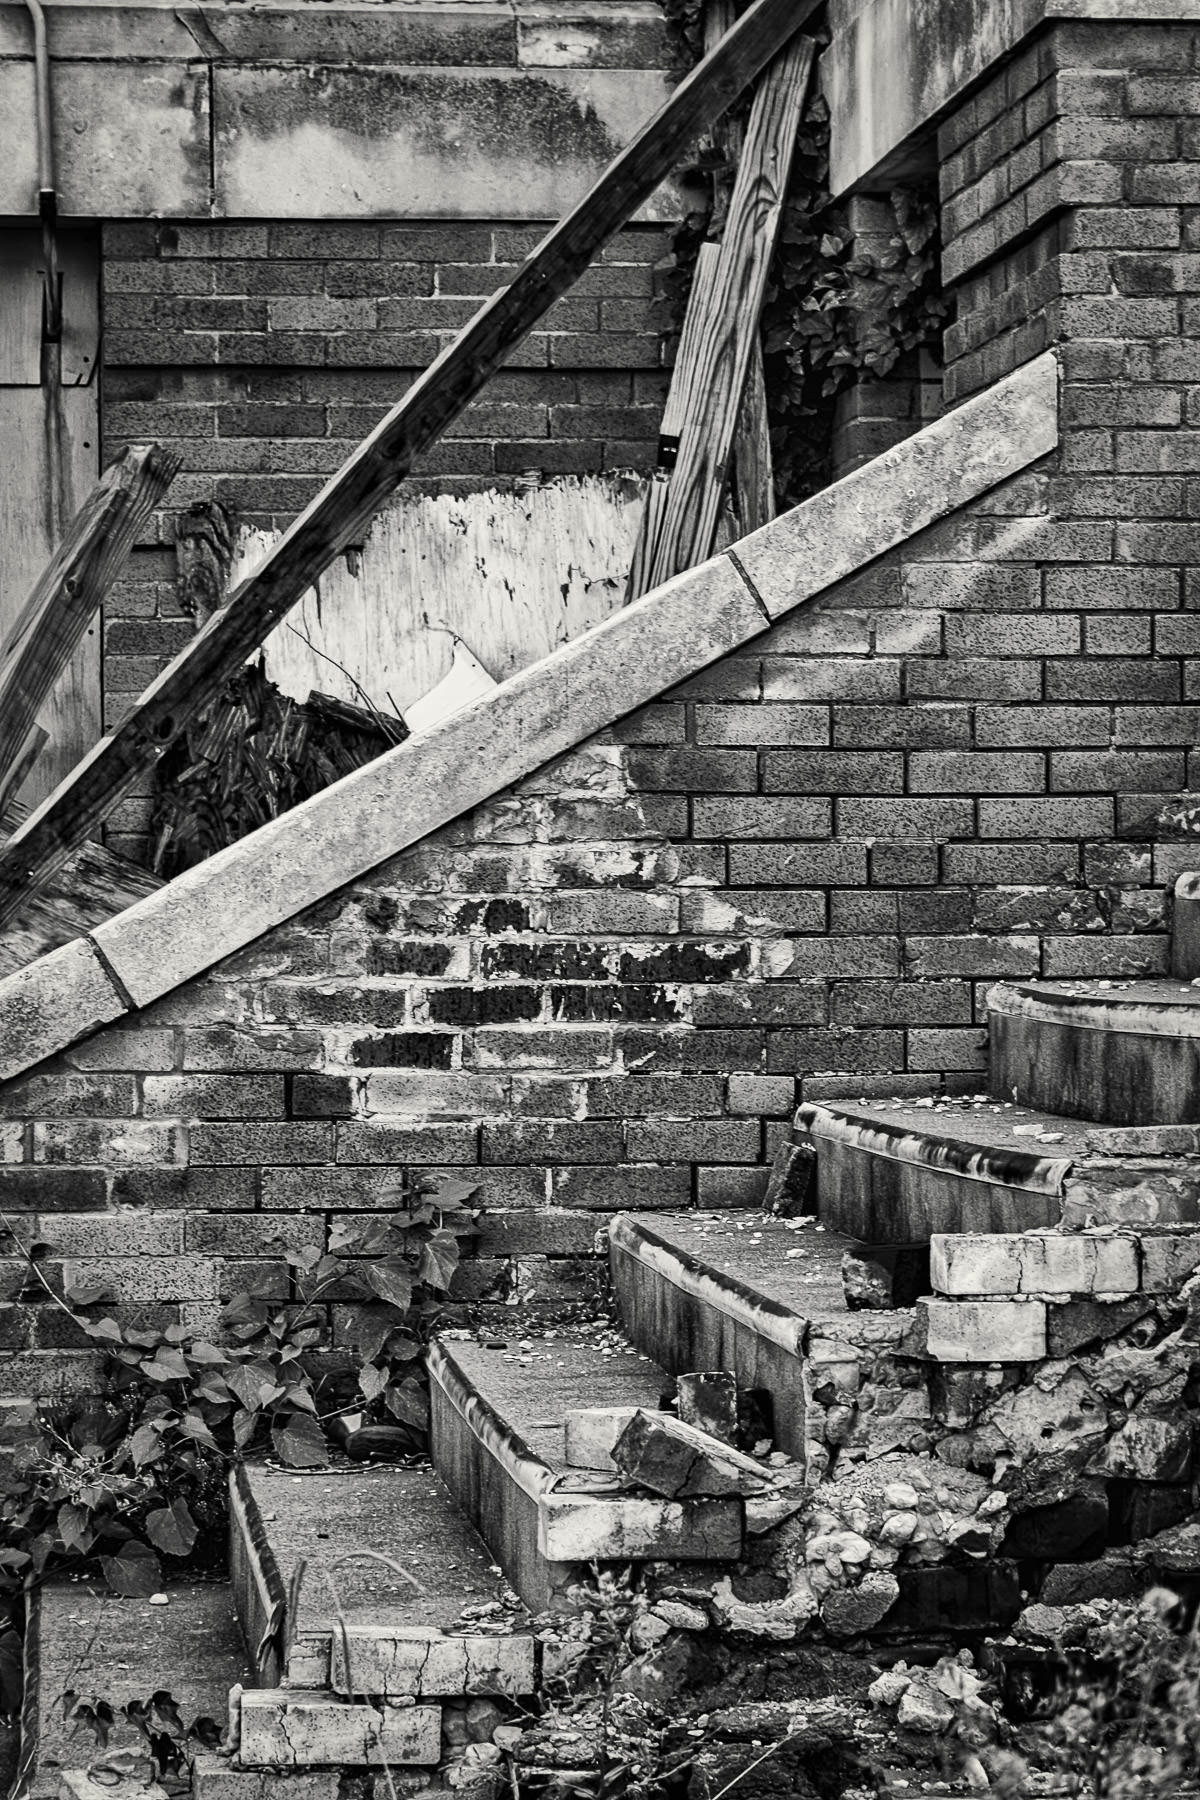 Crumbling stairs in Denison, Texas.